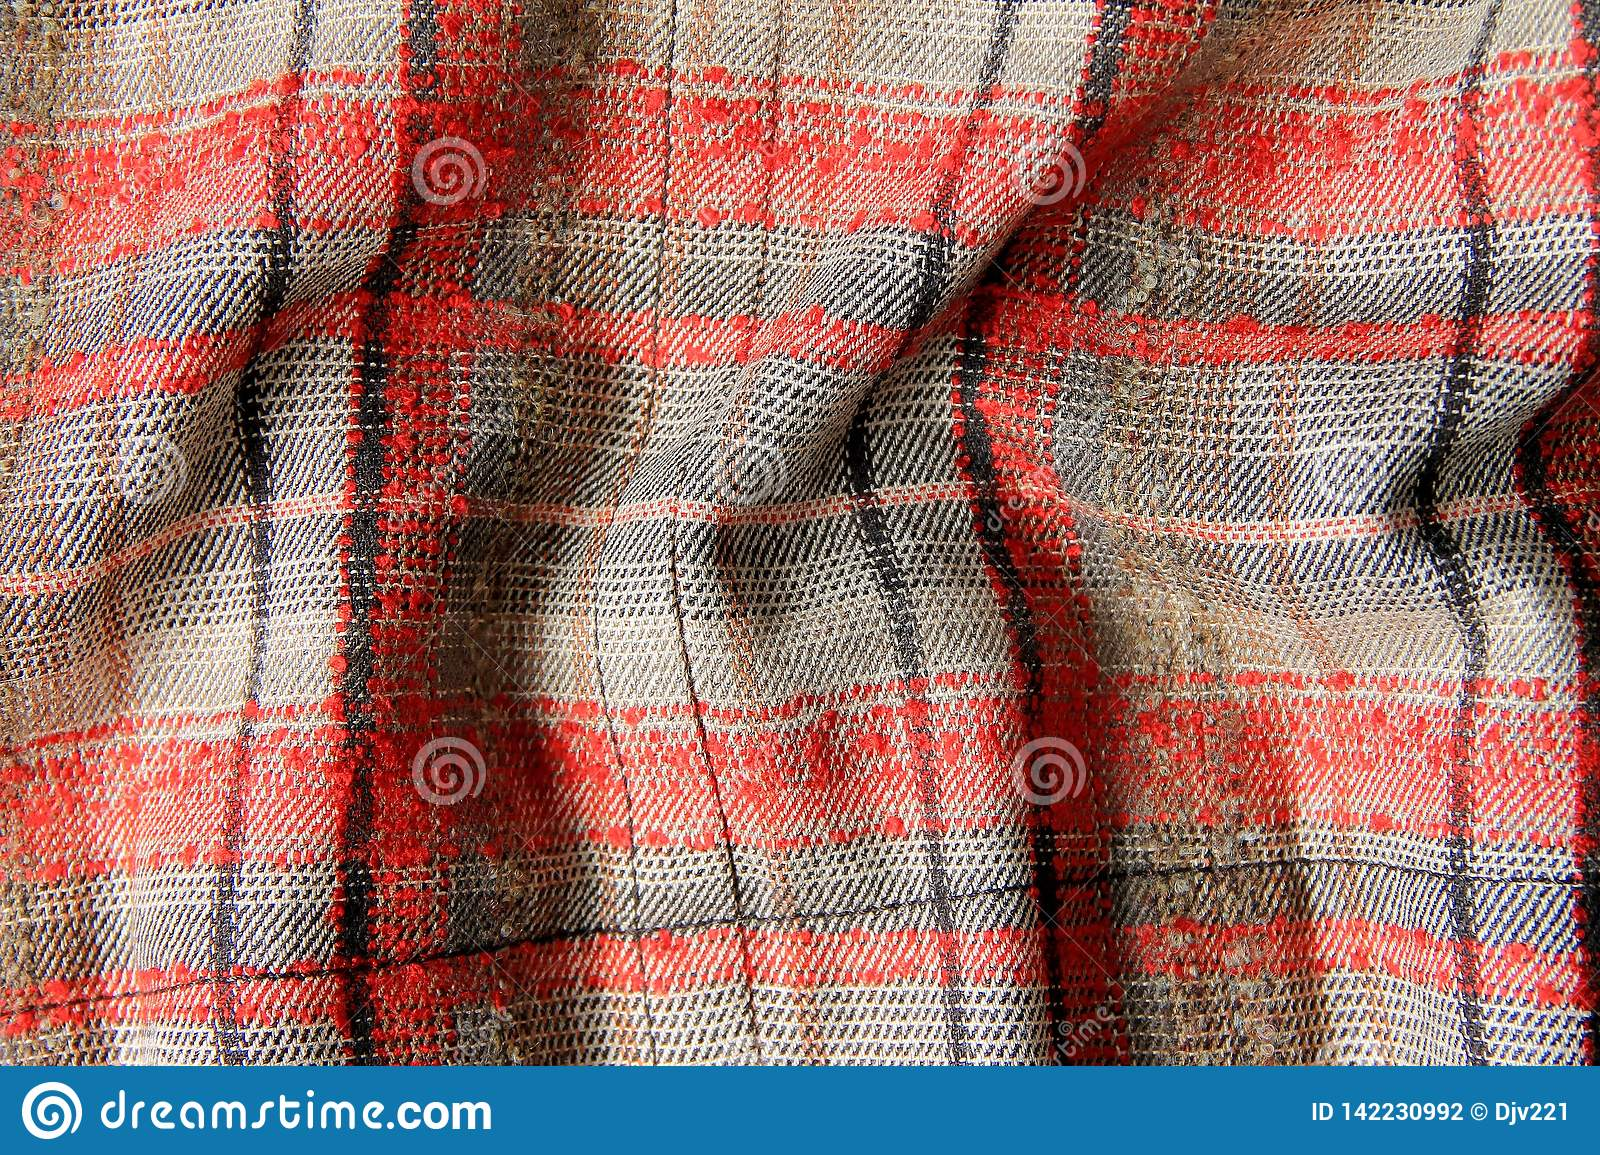 Tweed fabric in a red-gray cell crumpled